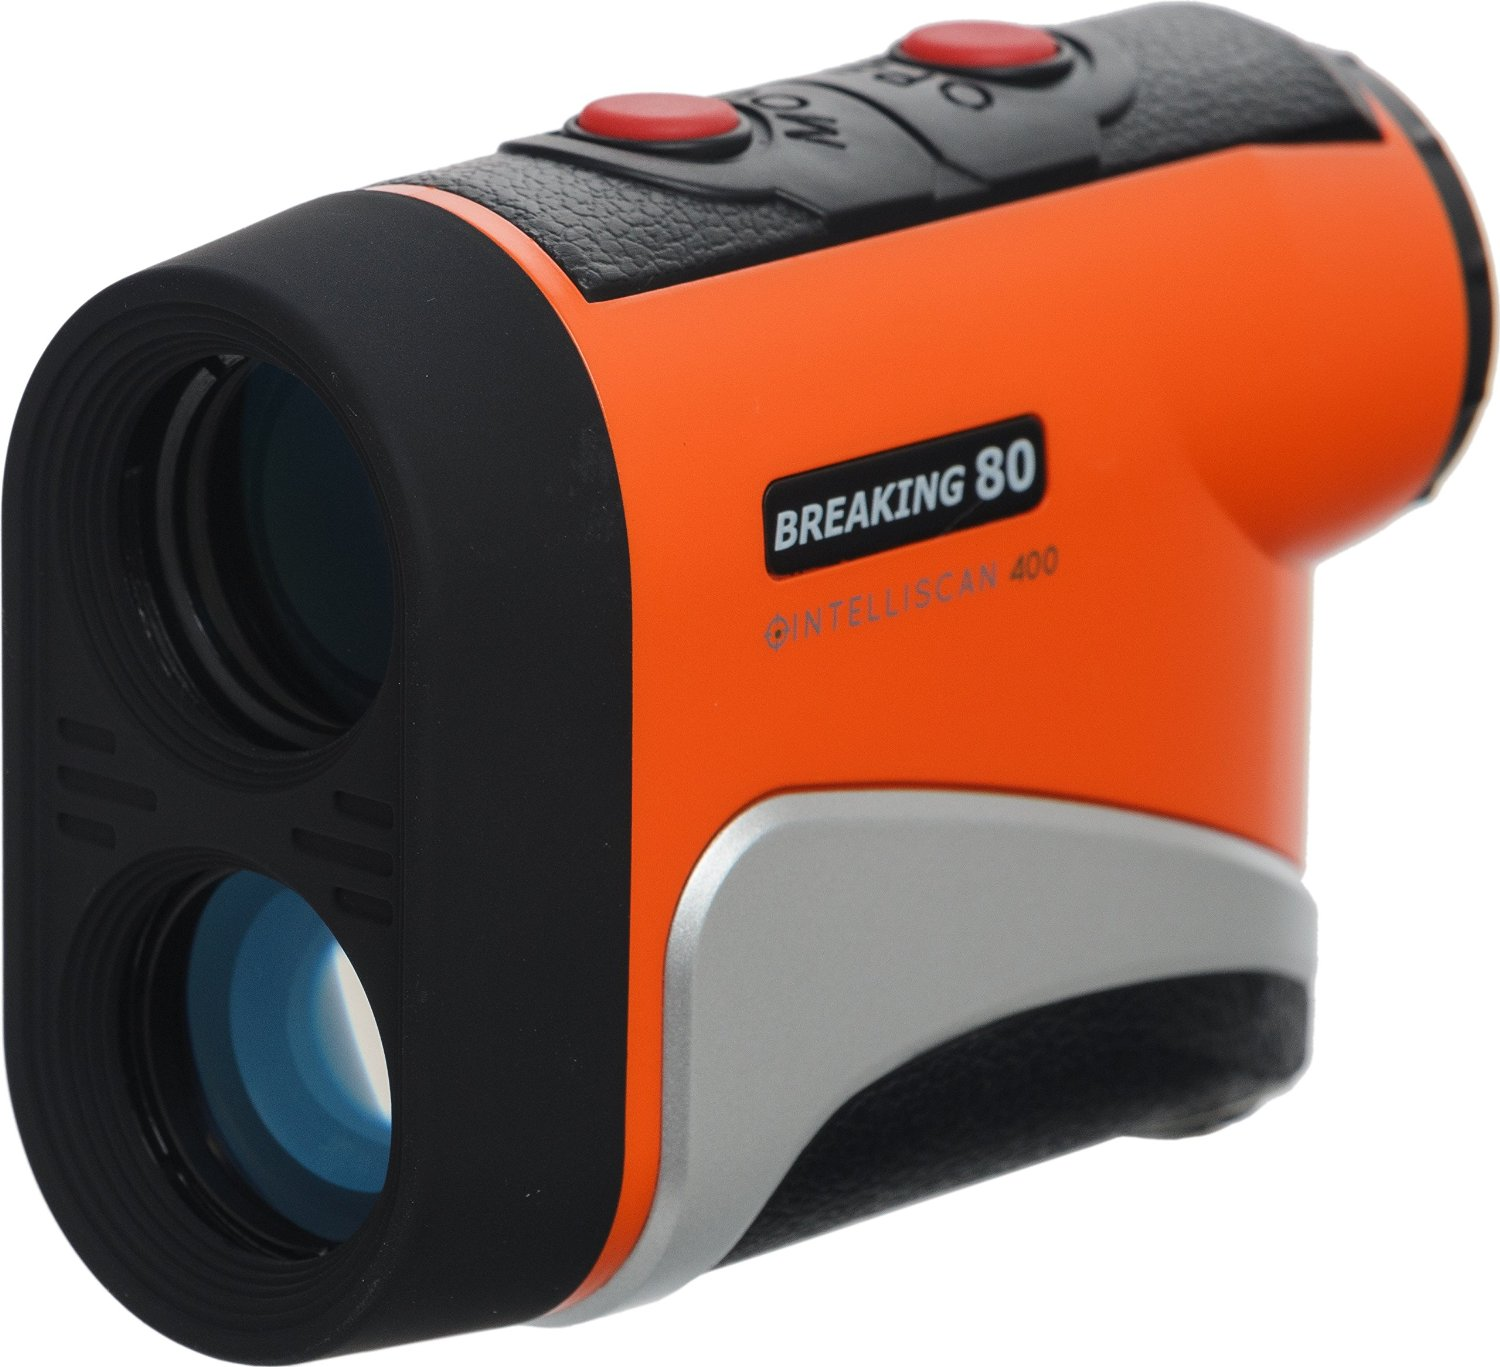 Breaking 80 Golf Slope Laser Range Finders 400